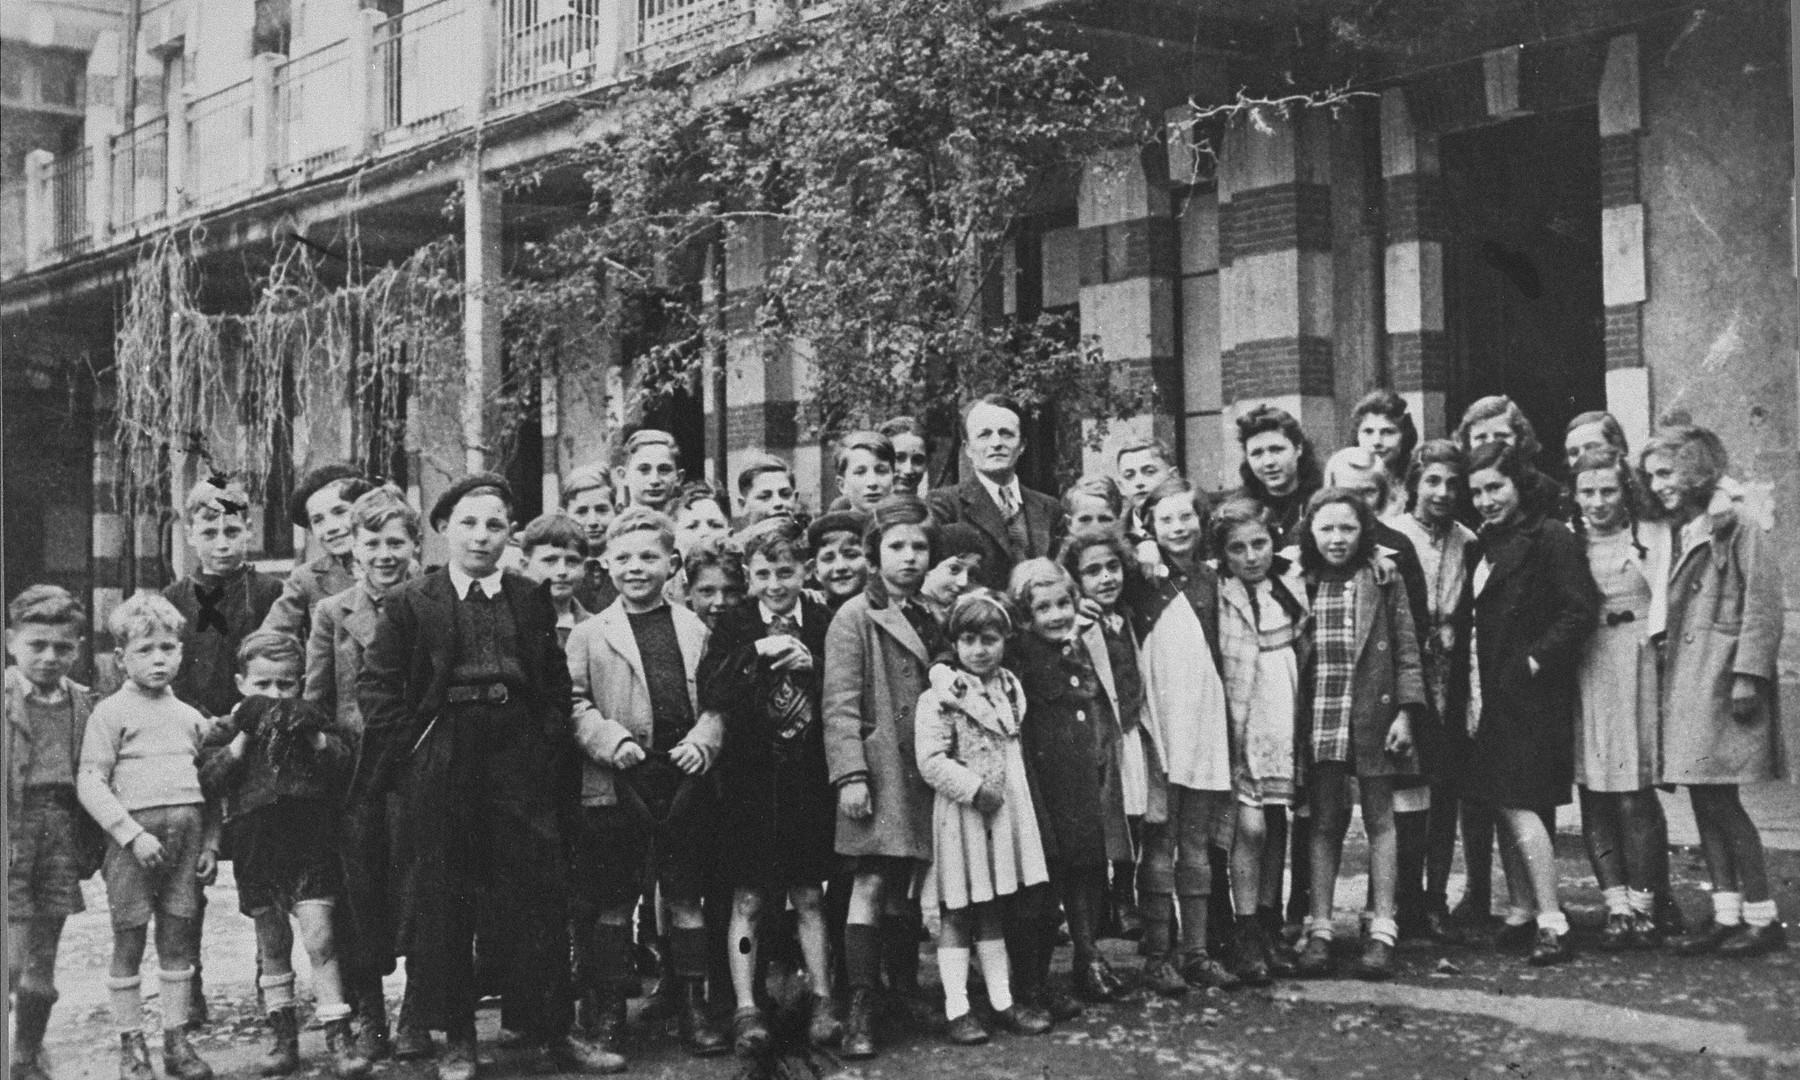 """Group portrait of Jewish children at the OSE home, """"Maison des Pupilles de la Nation,"""" in Aspet, France.    Standing in the middle of the group is the director, Henri Couvot.  Michael Oppenheimer is pictured in the last row, second from the left, his face partially hidden.    The children were brought to the home from French transit camps with the assistance of the American Friends Service Committee (AFSC) and the Oeuvre de secours aux enfants (OSE)."""